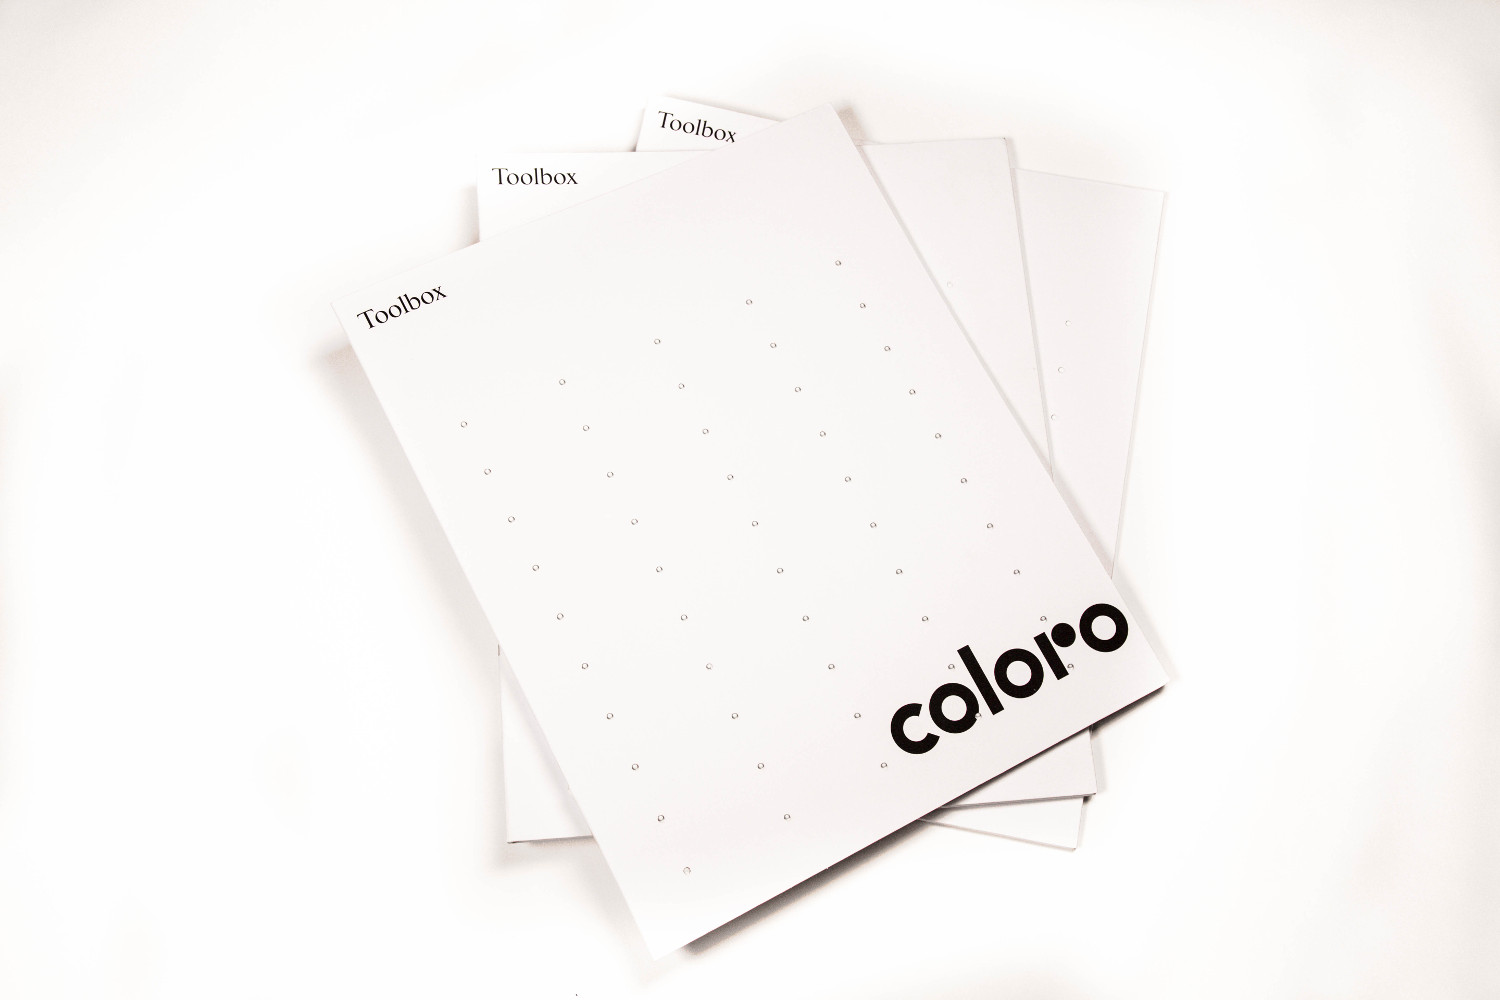 Coloro Empty Folder